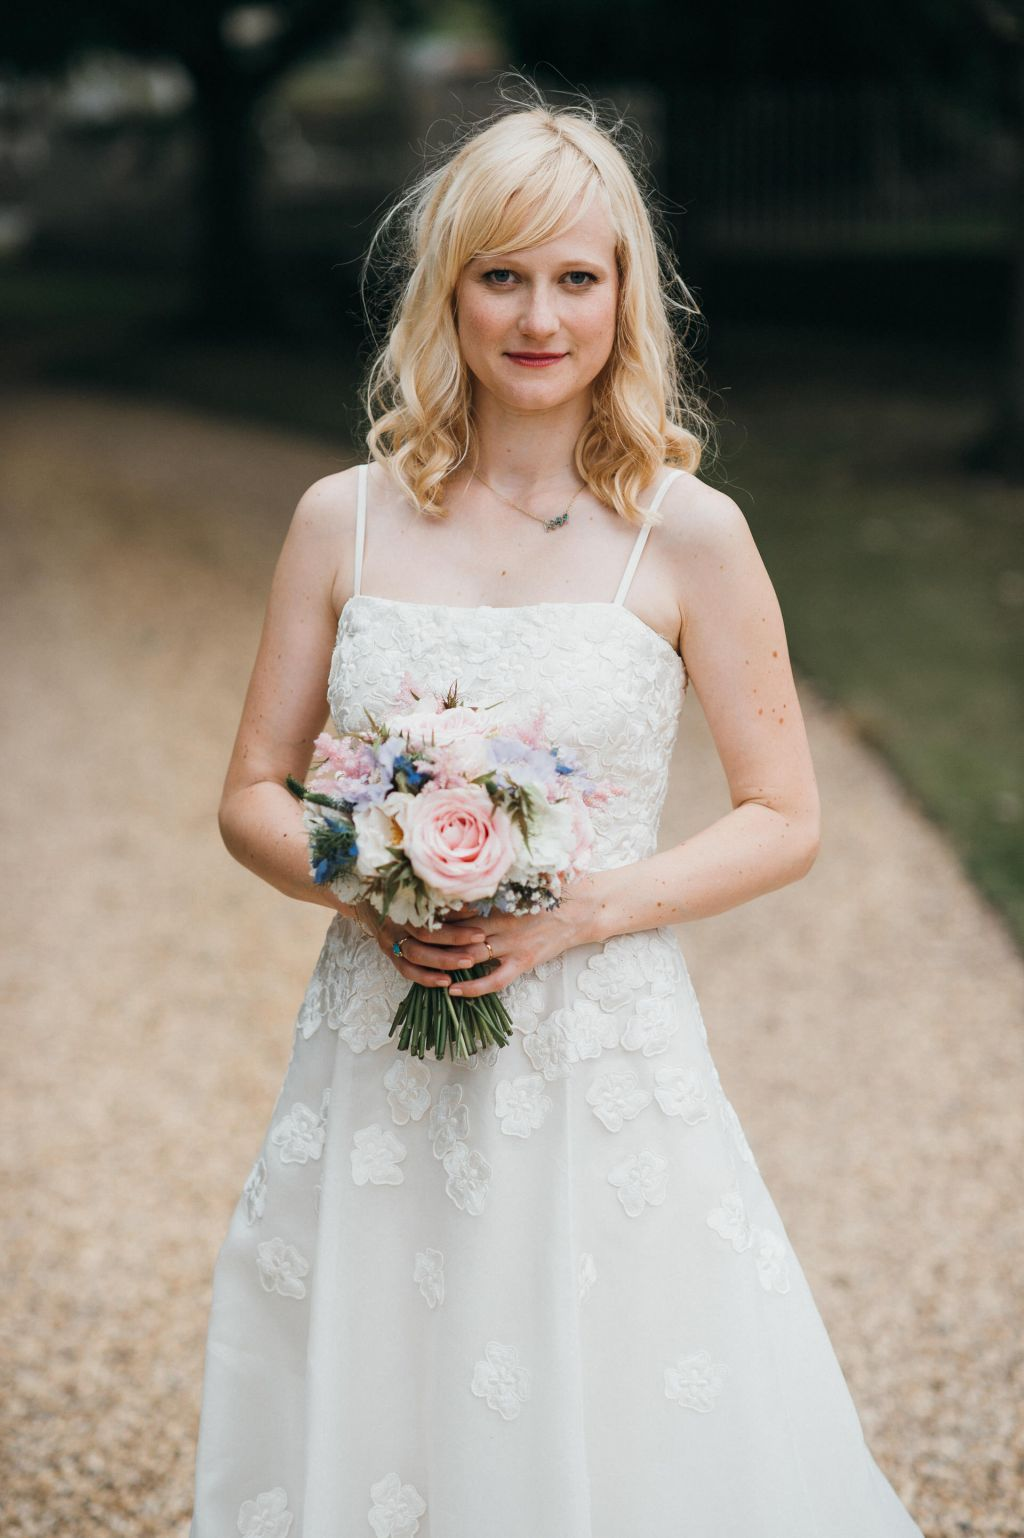 A simple ivory wedding dress with spaghetti straps at this Wiltshire wedding.